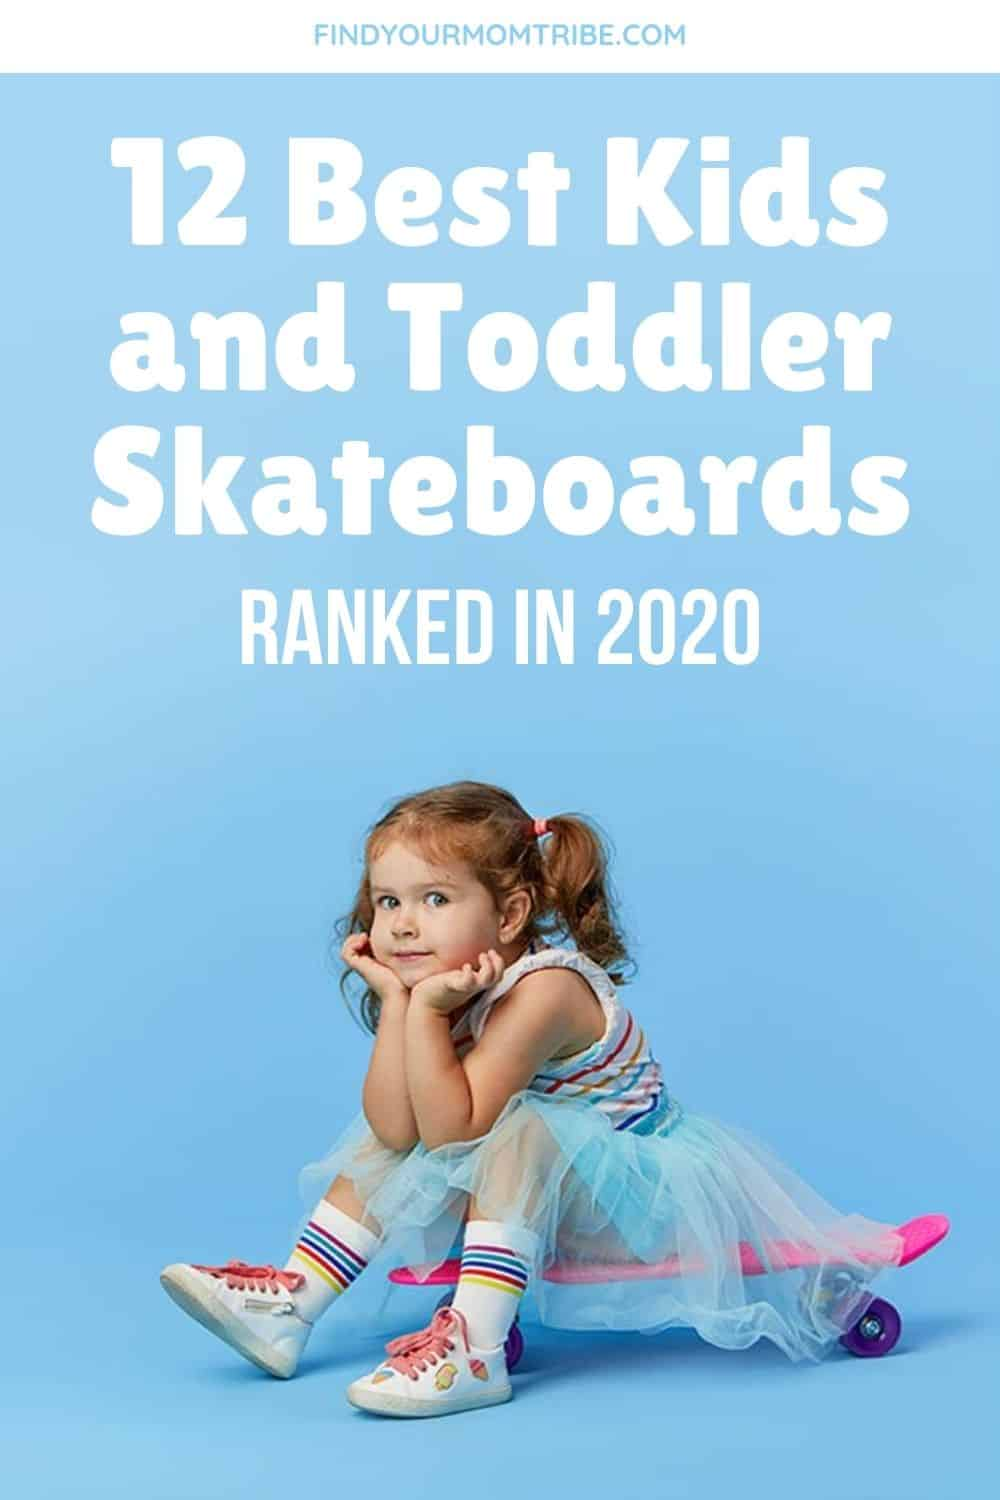 12 Best Kids and Toddler Skateboards Ranked in 2020